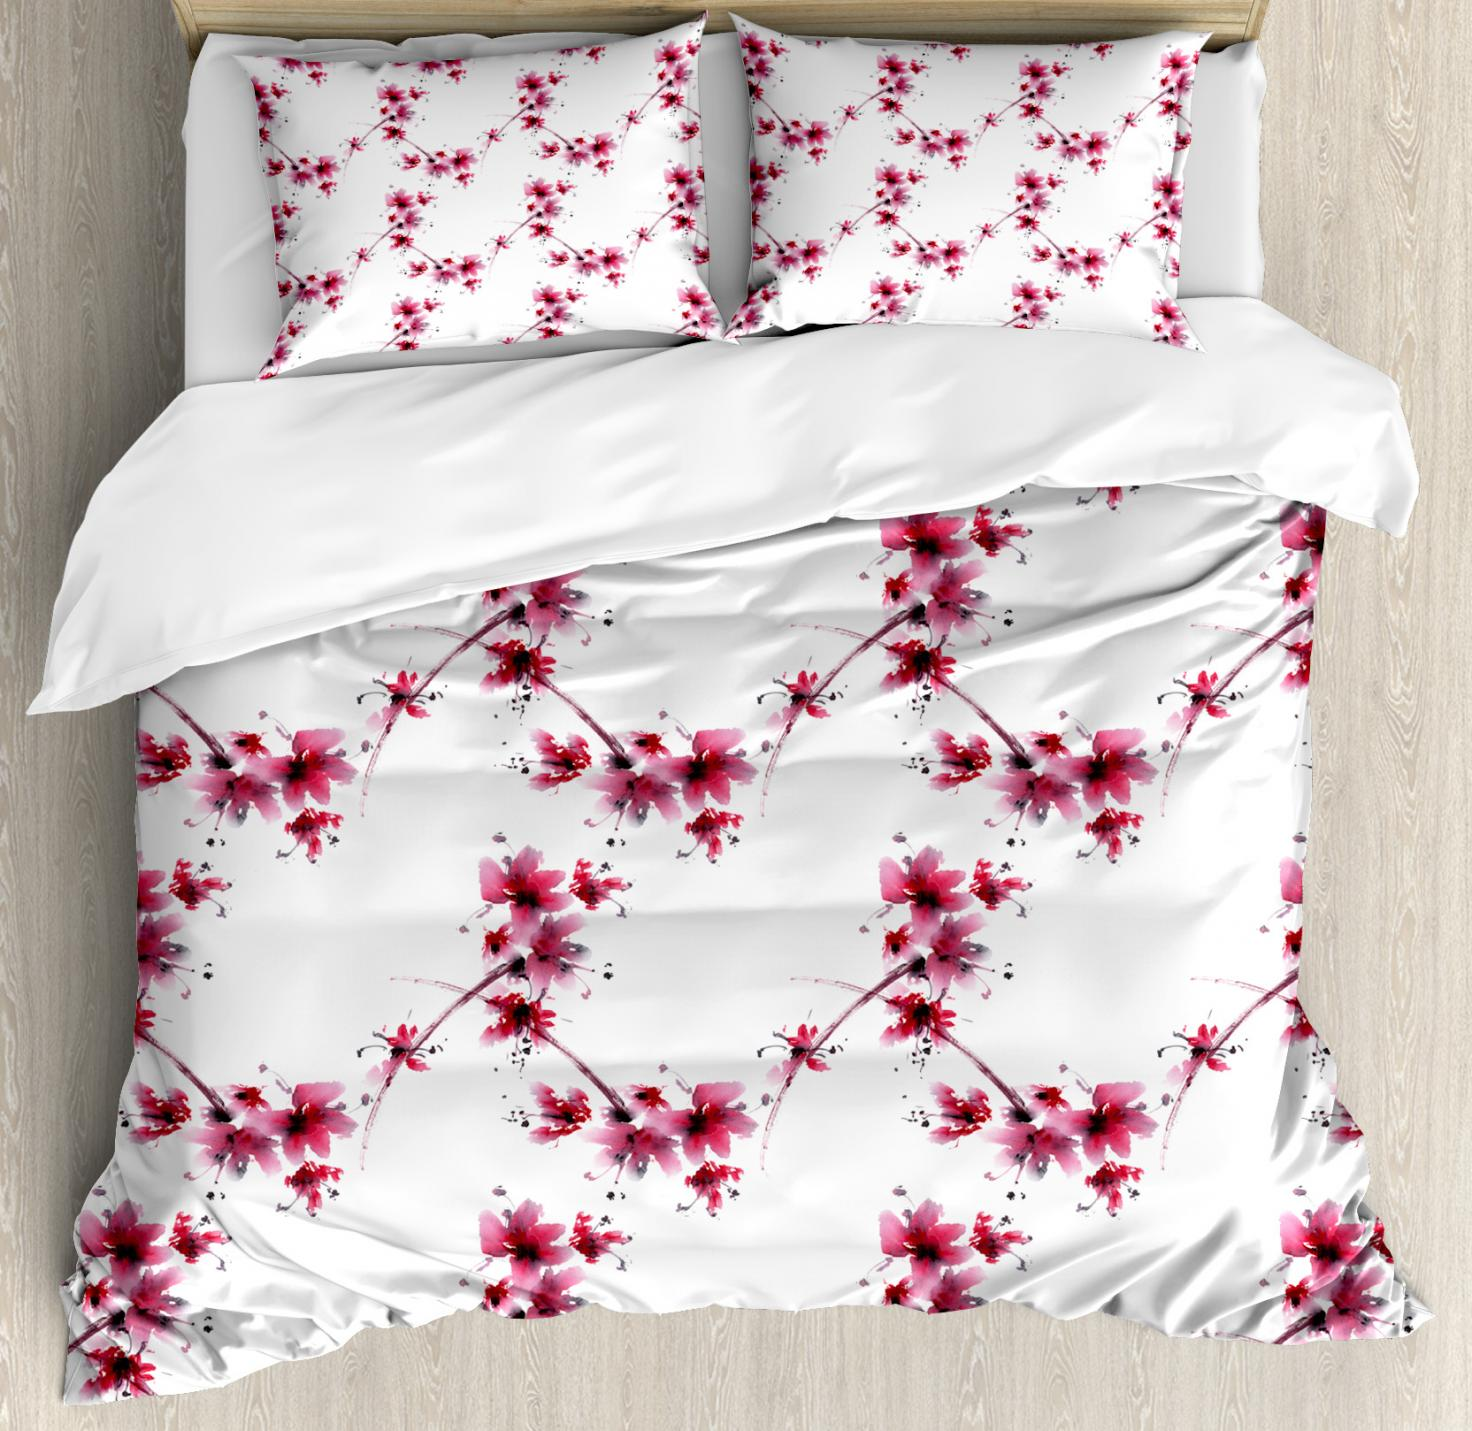 Asian Duvet Cover Set, Watercolors Petal Flower Oriental Ethnic Native  Floral Pattern with Twigs Artful, Decorative Bedding Set with Pillow Shams,  ...